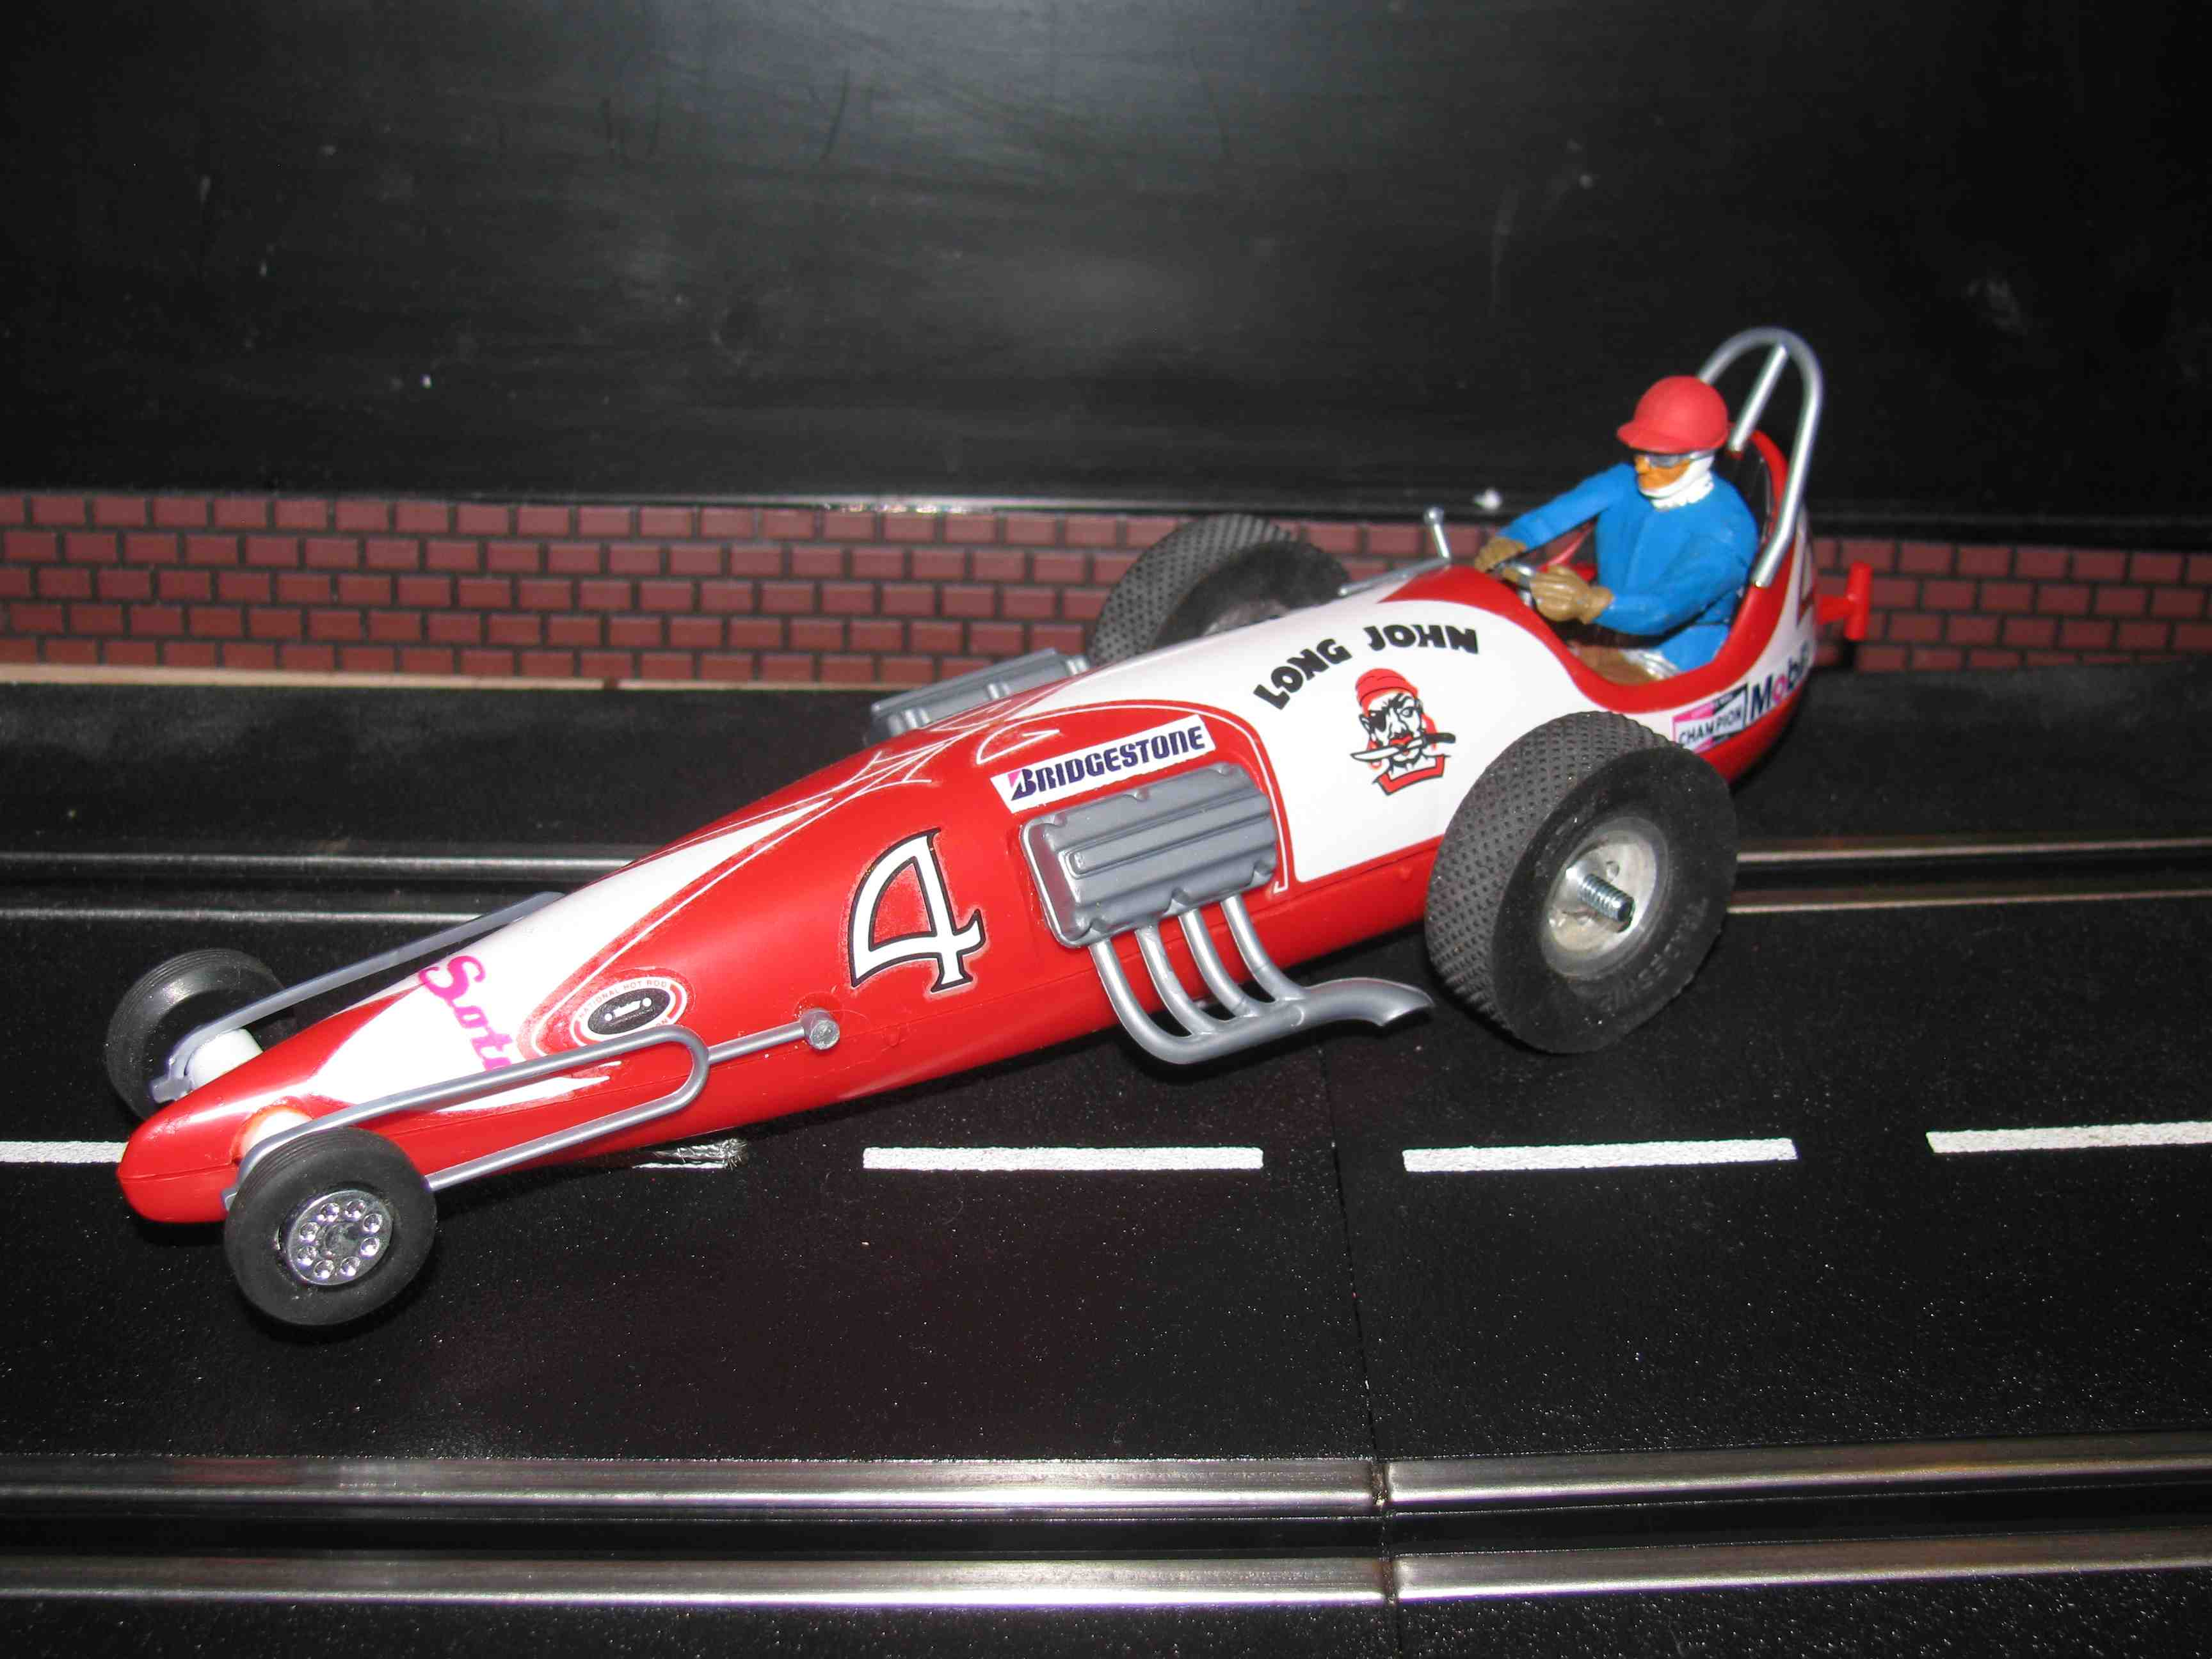 * SOLD * Vintage Monogram Revell Long John Dragster Slot Car 1/32 Scale – Red – Car #4 VI